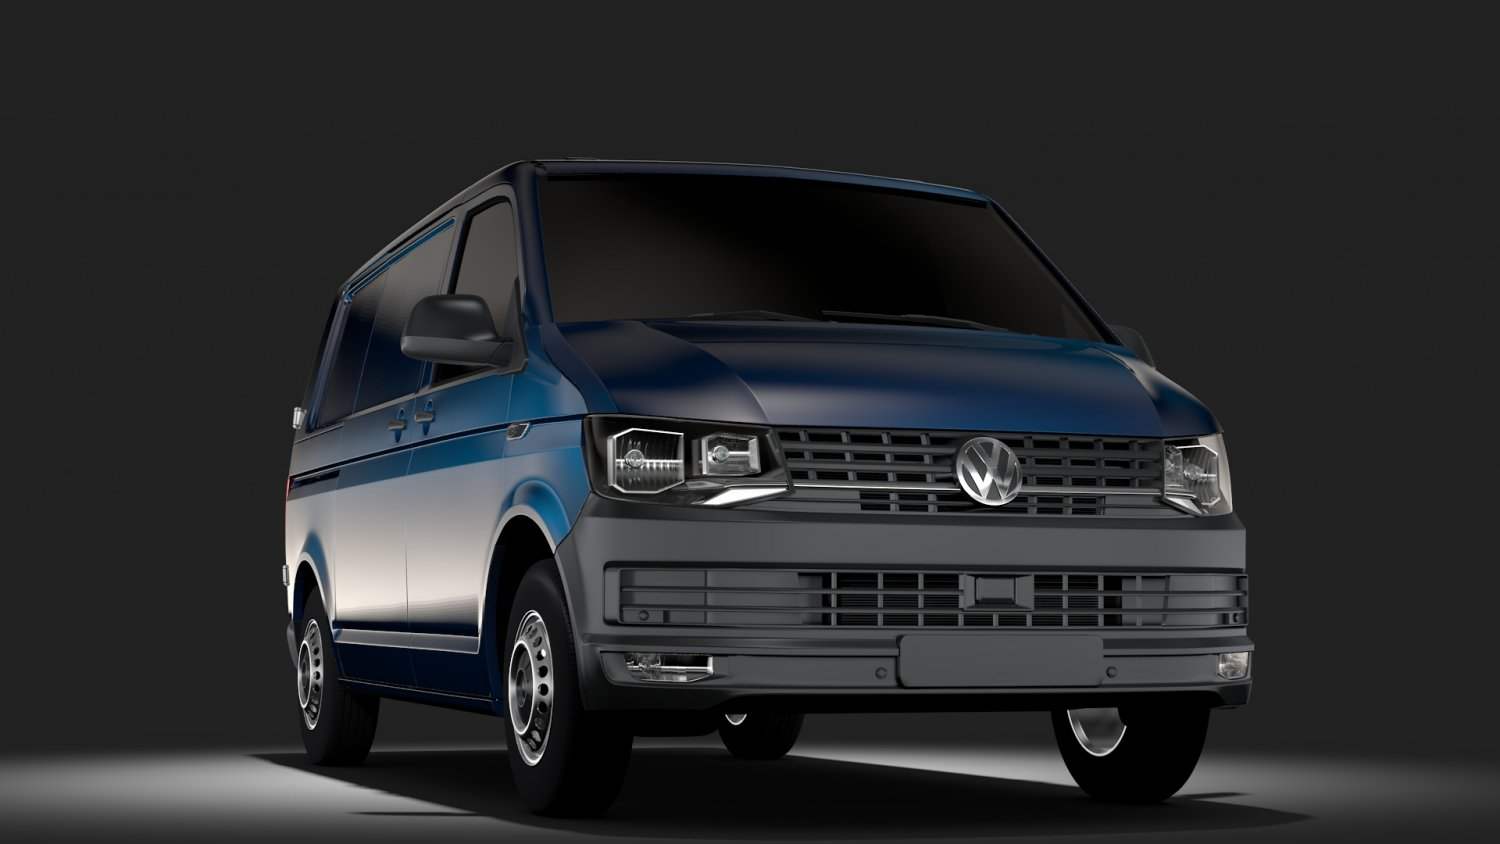 Volkswagen Transporter Van L1h1 T6 2017 Model In And Minivan Export